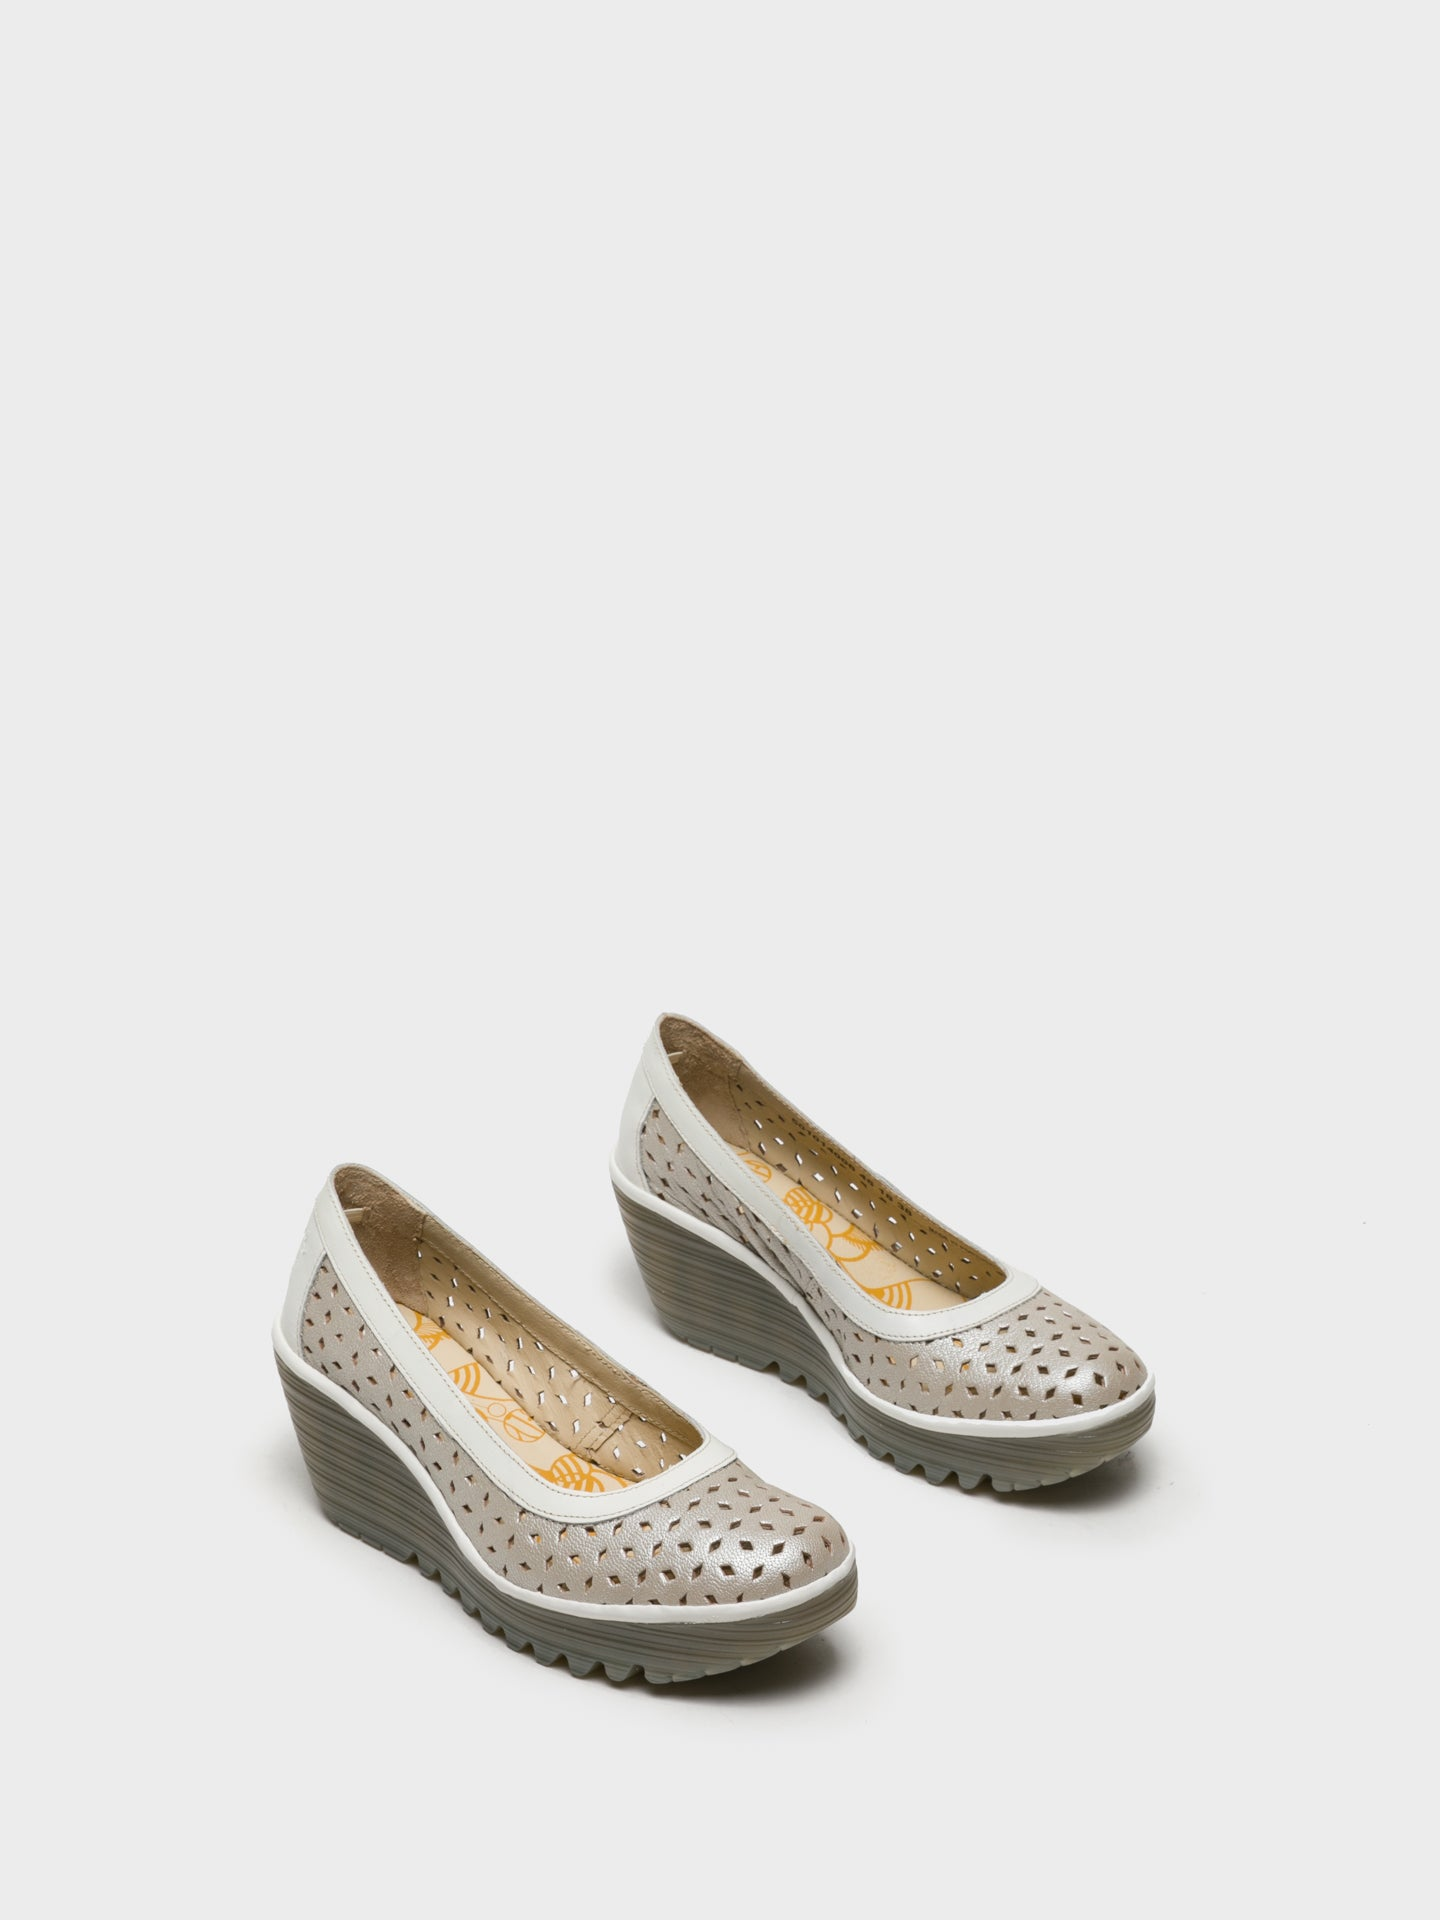 Fly London Wedge Shoes YTEC014FLY Silver